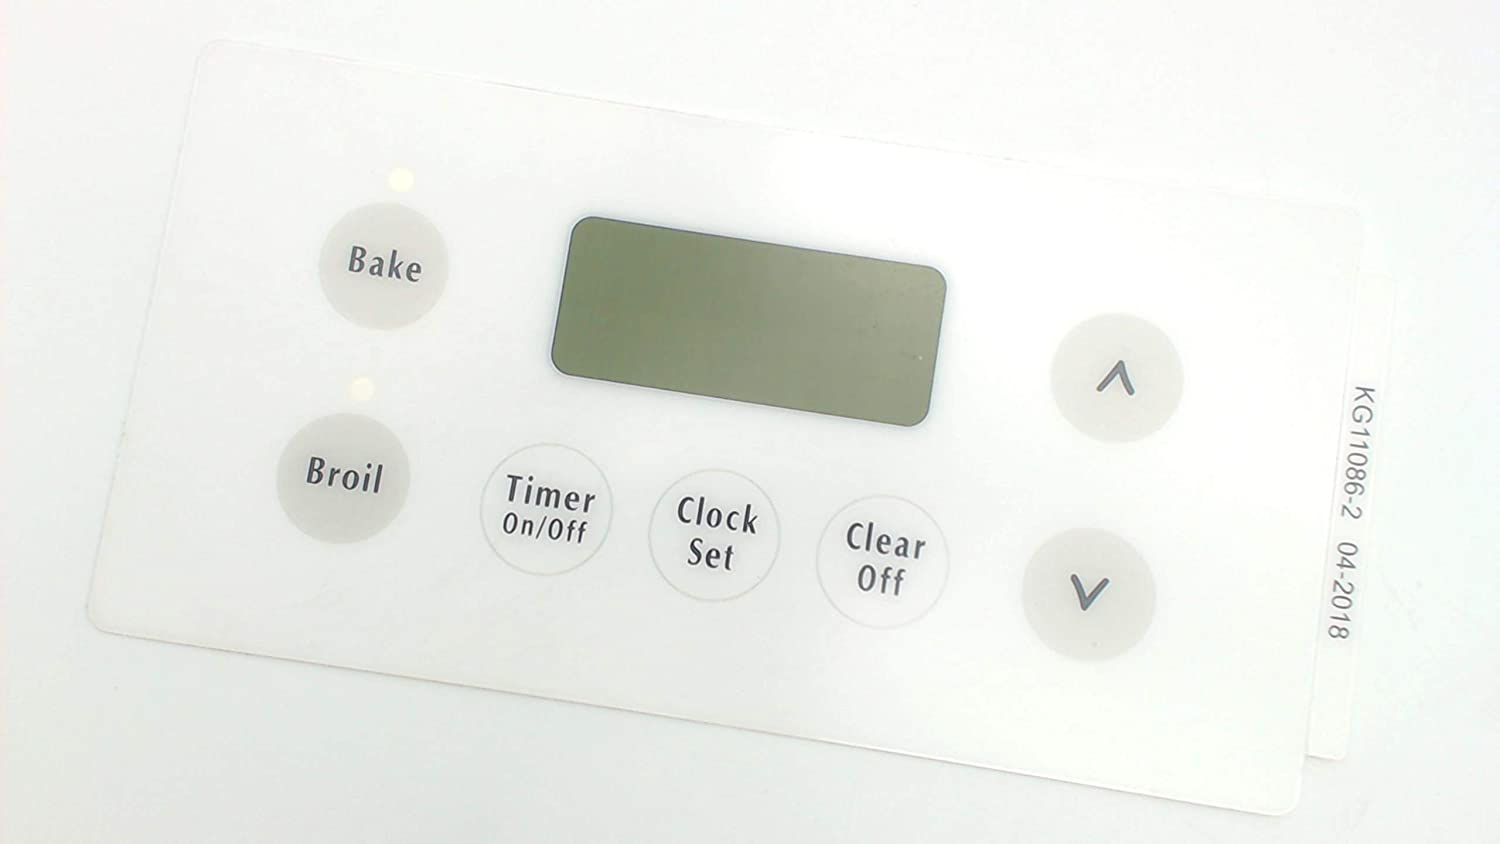 316220728 Overlay Compatible With Frigidaire Stove Oven Ranges